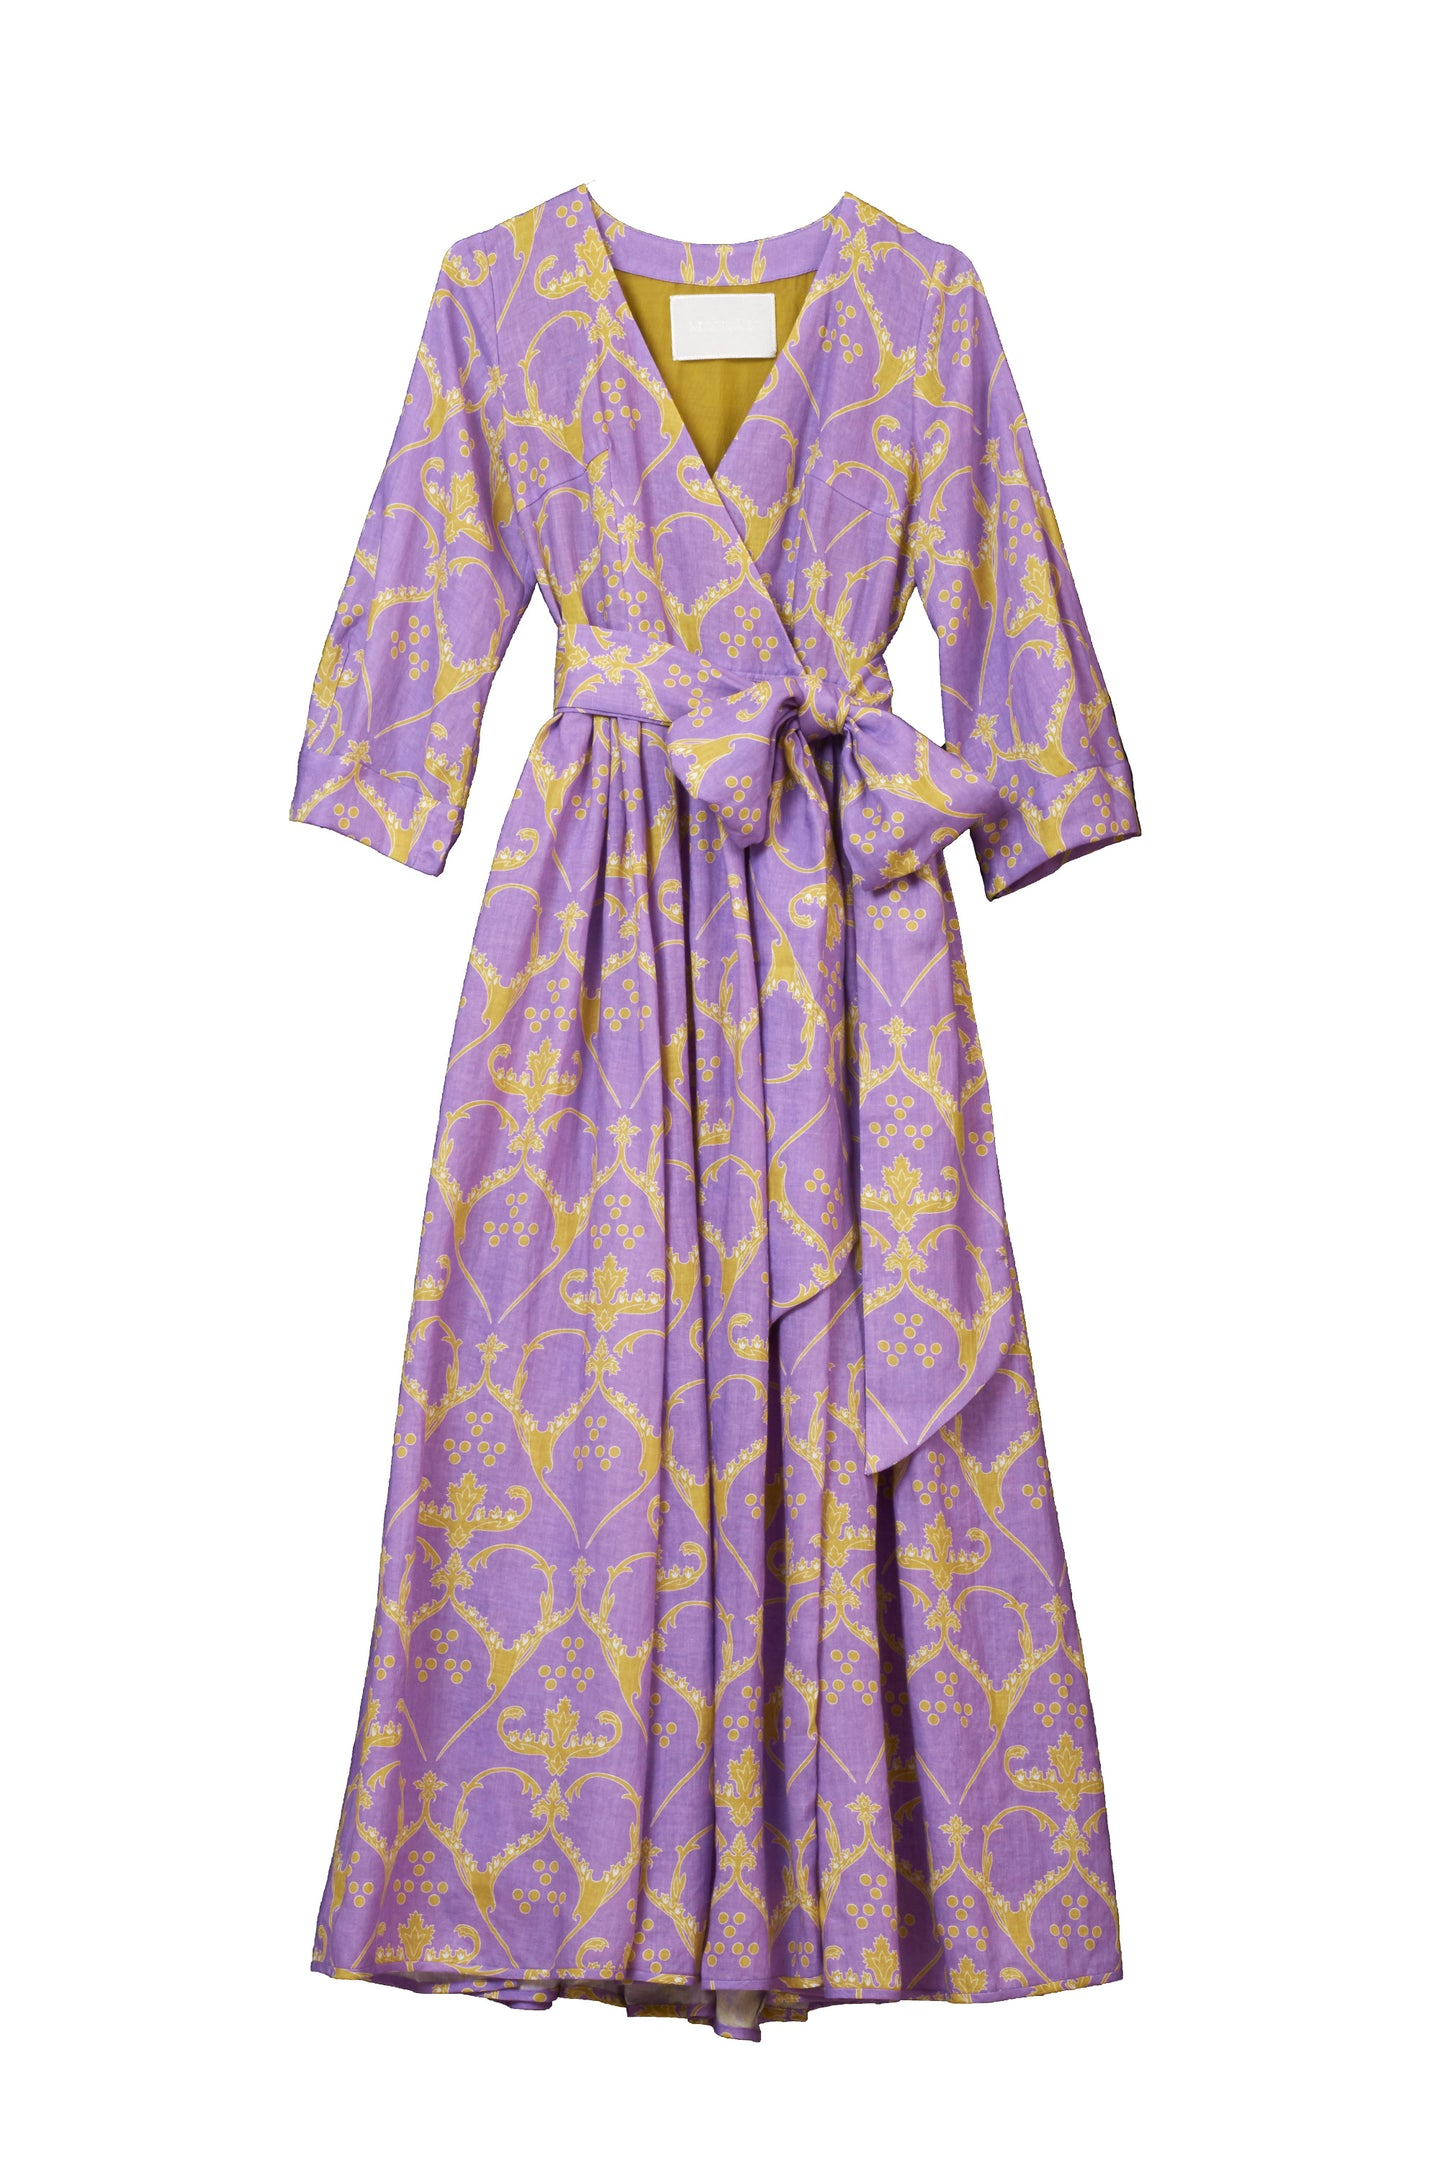 Linen Heart Print Wrap Dress | Lilac